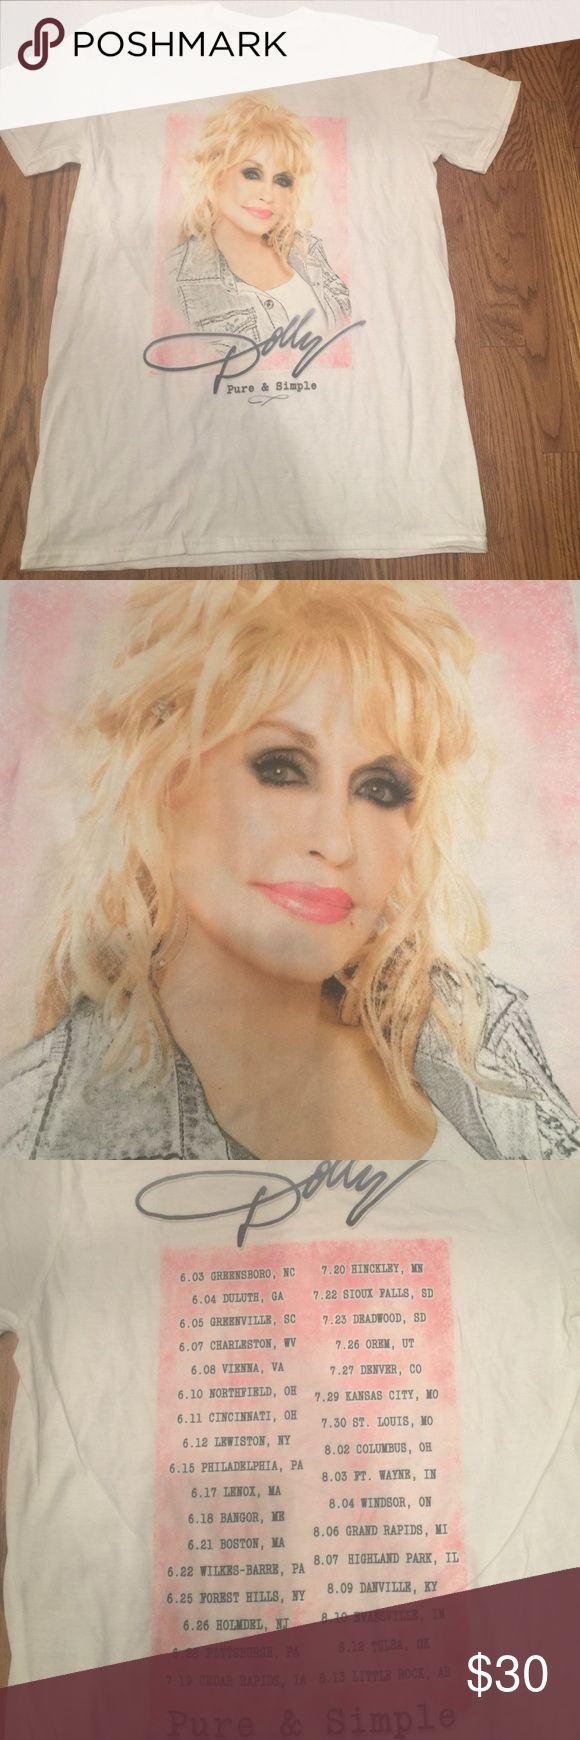 "Dolly Parton Concert T Shirt 2016 Dolly Parton Concert T Shirt.  Never worn. Is technically a size medium but fits more like a size small which is why I've listed it as such.  Hits me on my upper thigh and I'm 5""2 Tops Tees - Short Sleeve"